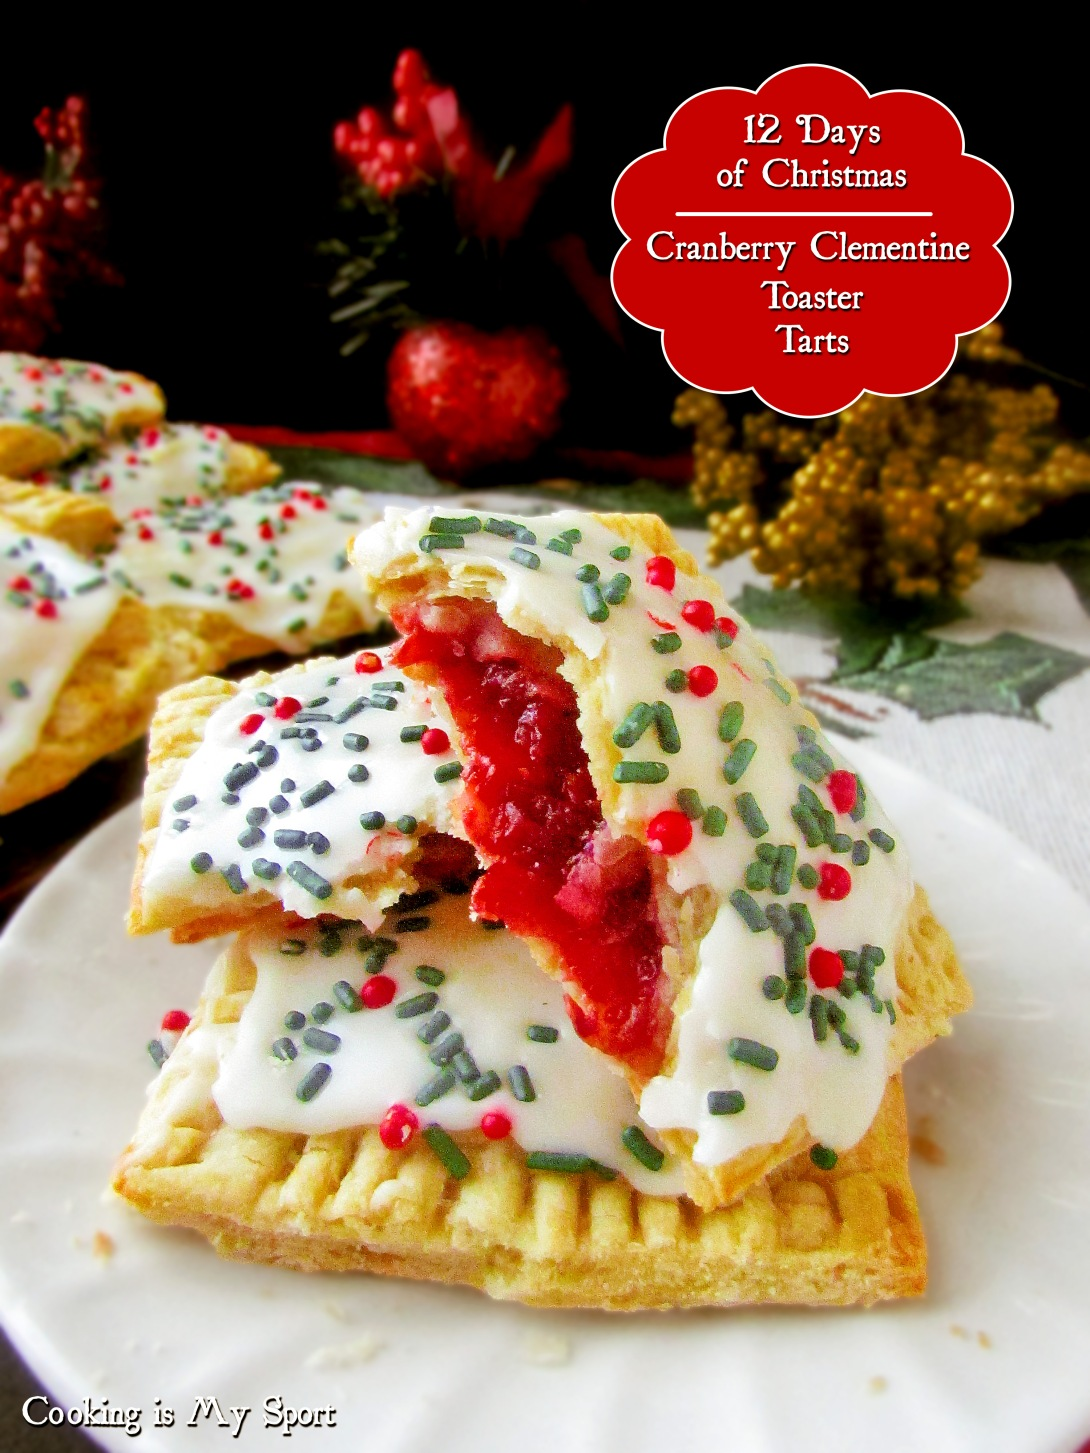 Cranberry Clementine Toaster Tarts3